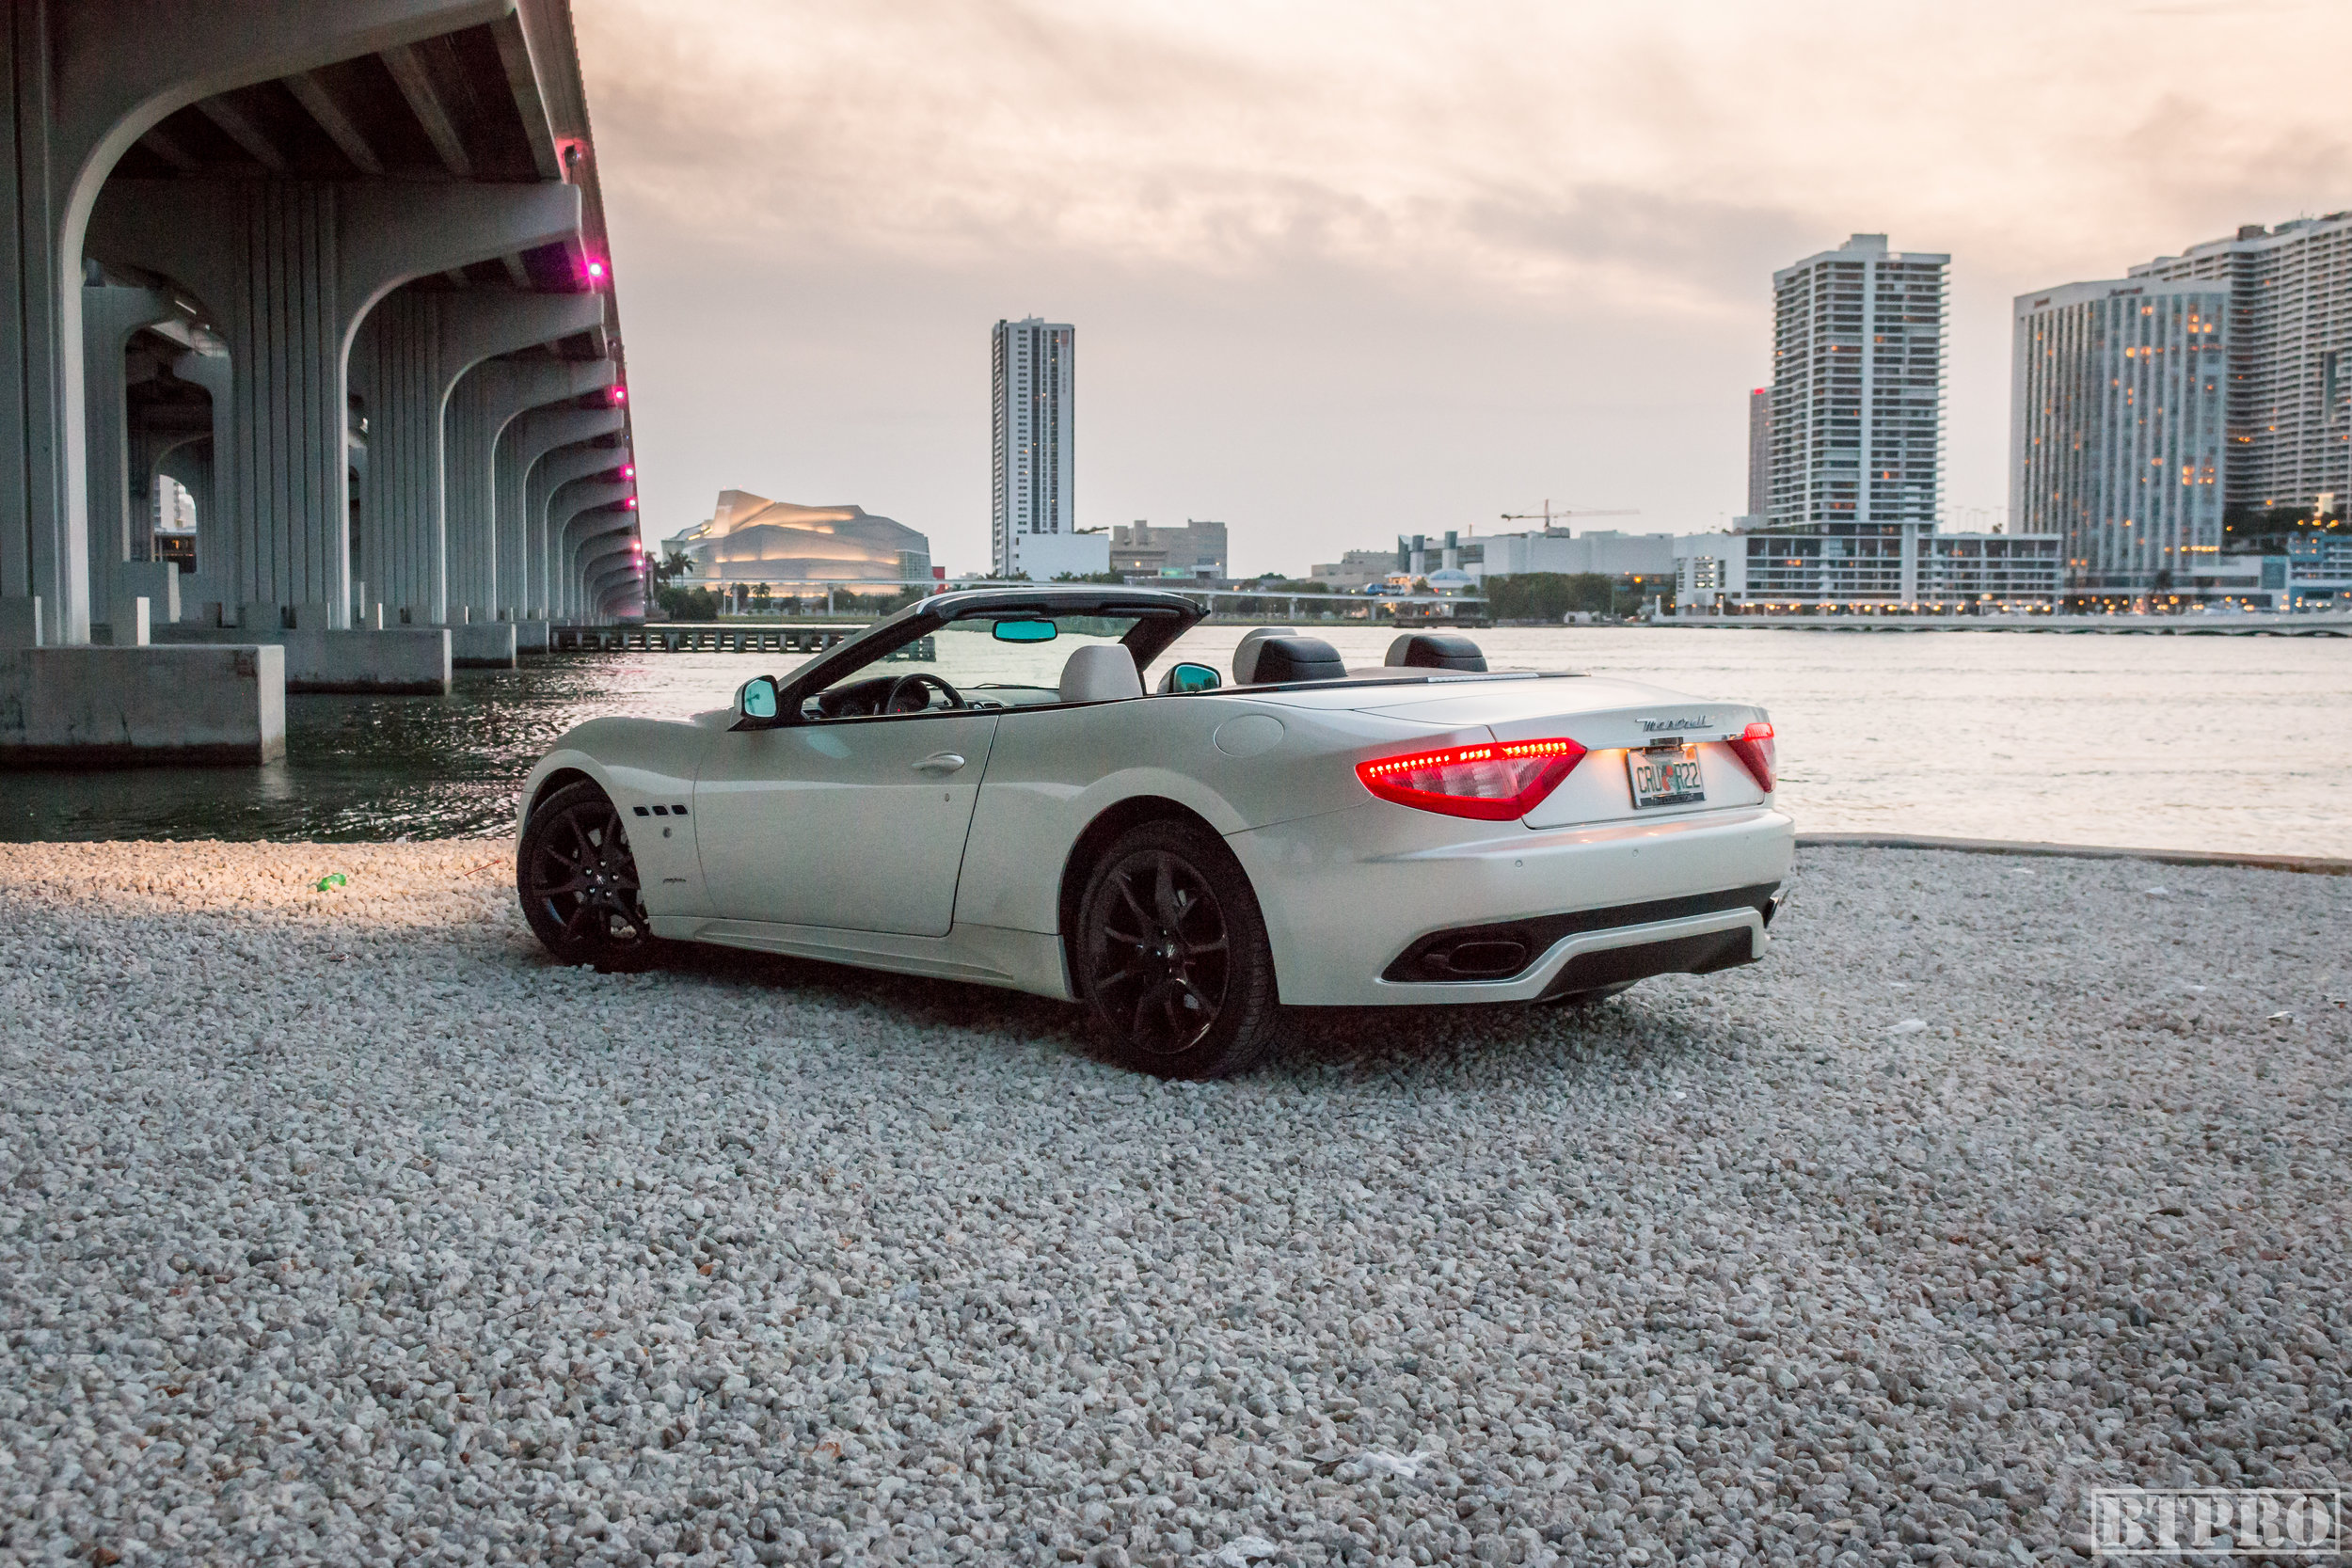 cars, car photo, car photography, maserati, luxury cars, miami, miami photographers